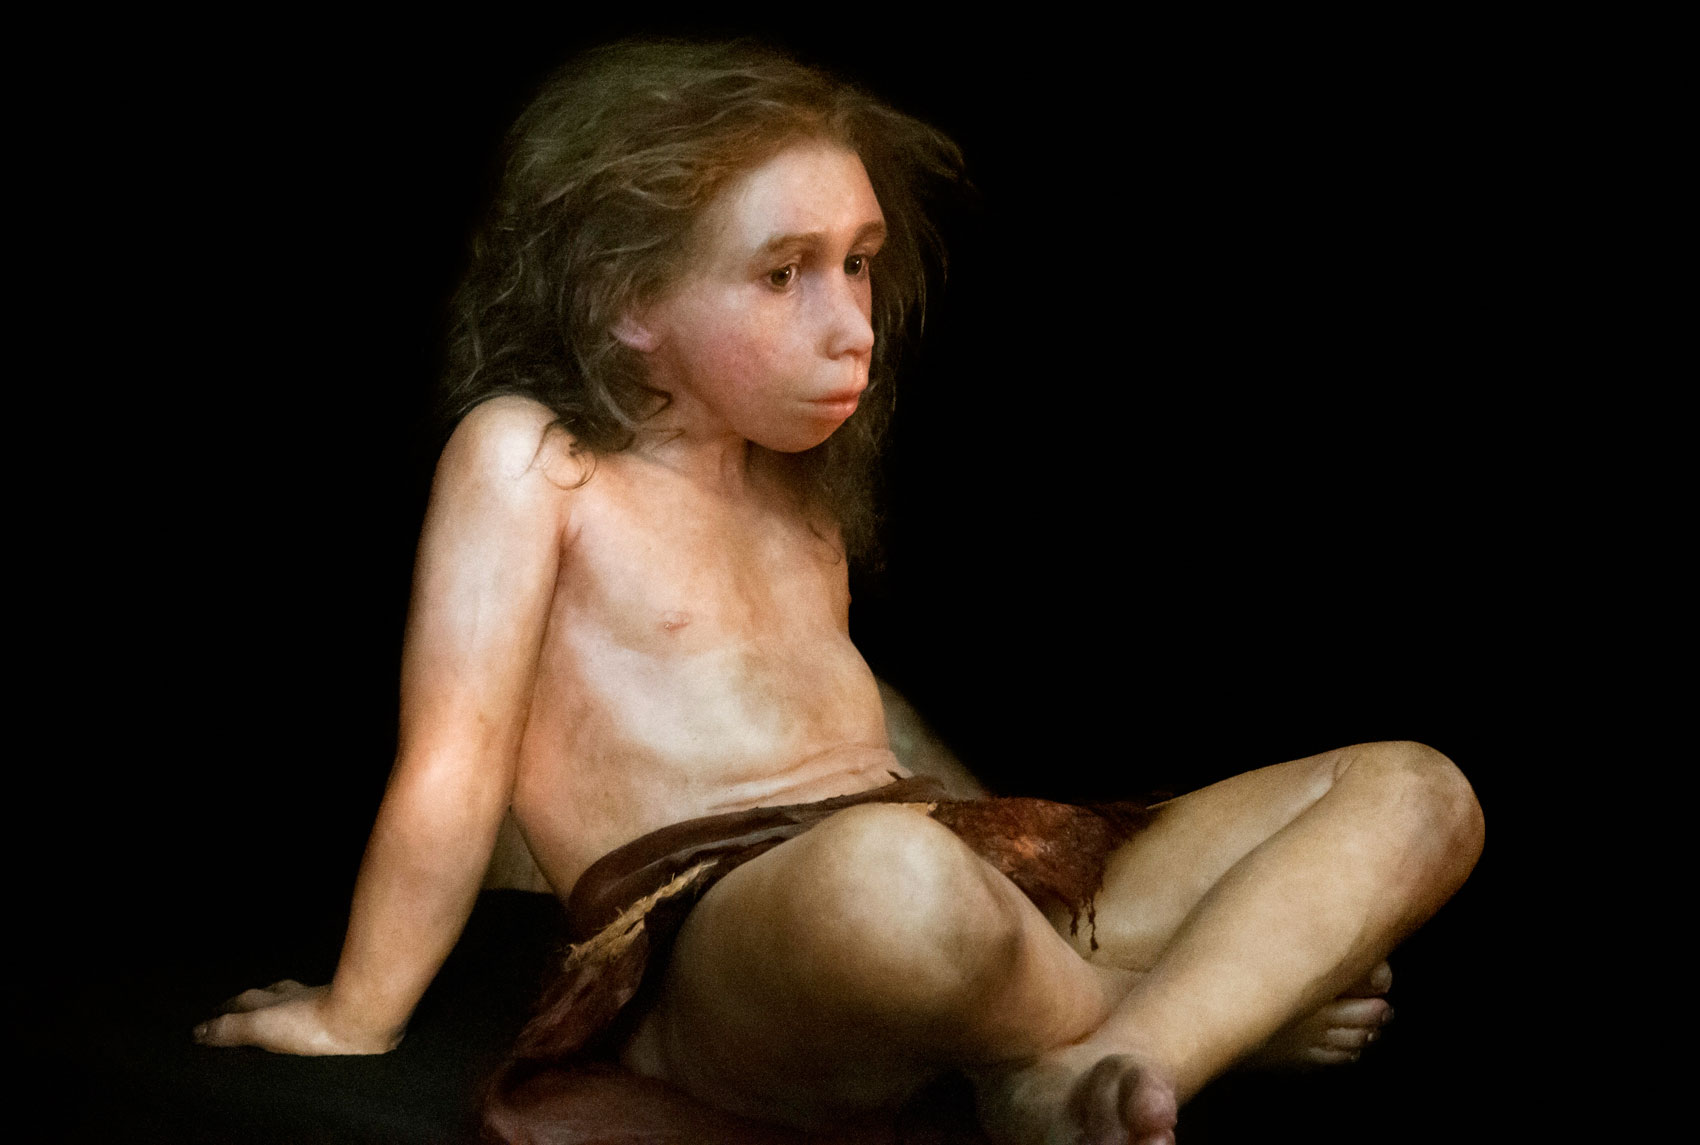 science humans started having with neanderthals over years